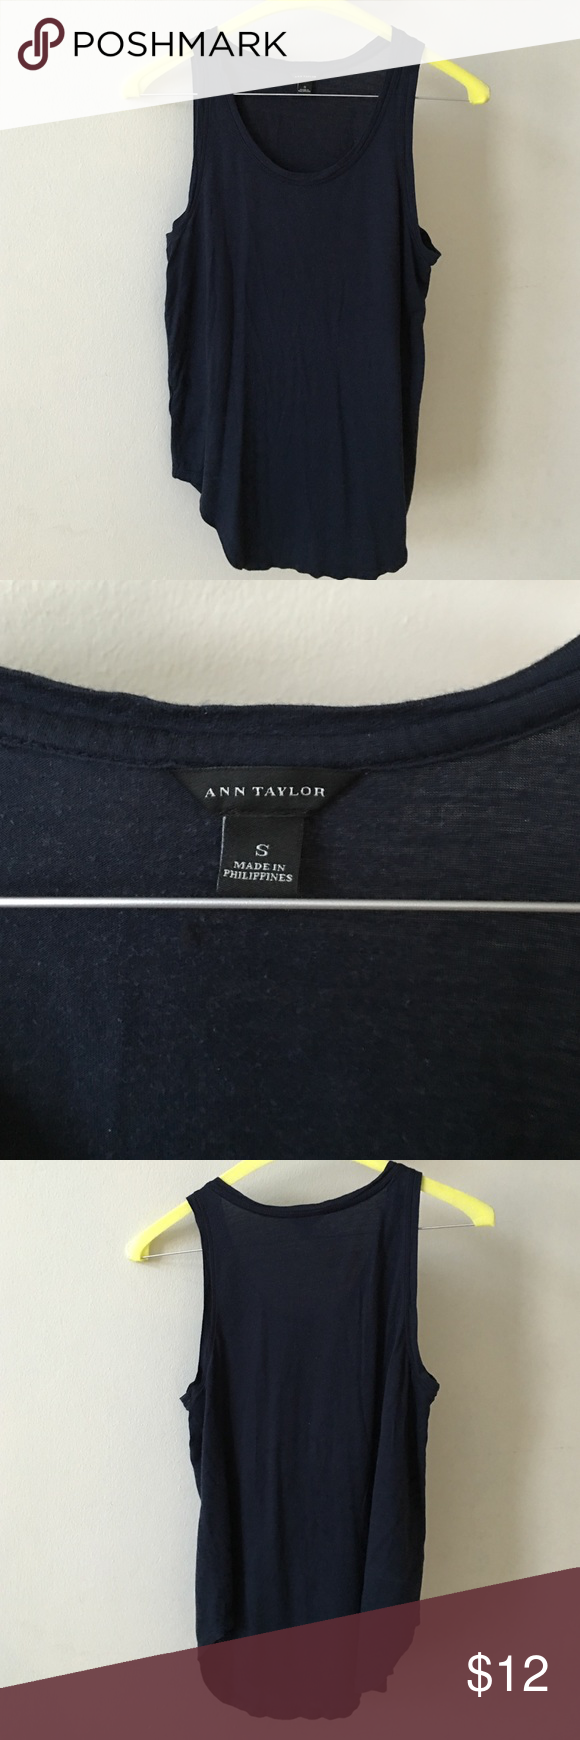 Ann Taylor gorgeous top S Ann Taylor gorgeous top S. 70% rayon. Very soft and comfortable. Great for summer weather. Ann Taylor Tops